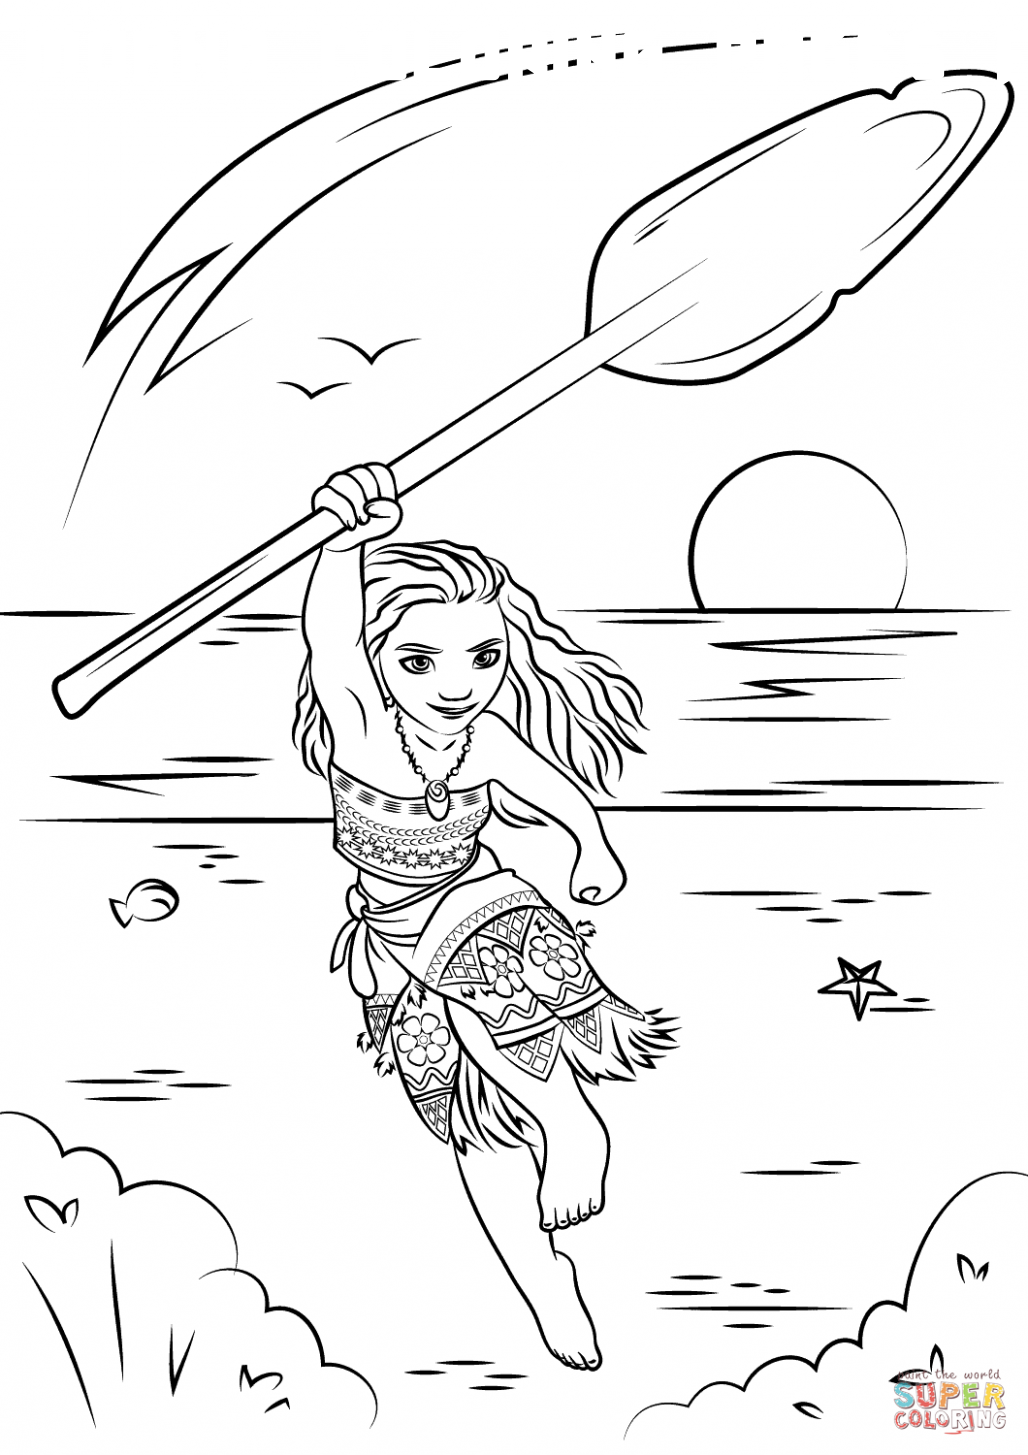 9 Moana Coloring Pages For Toddlers Moana Coloring Pages Moana Coloring Disney Coloring Pages